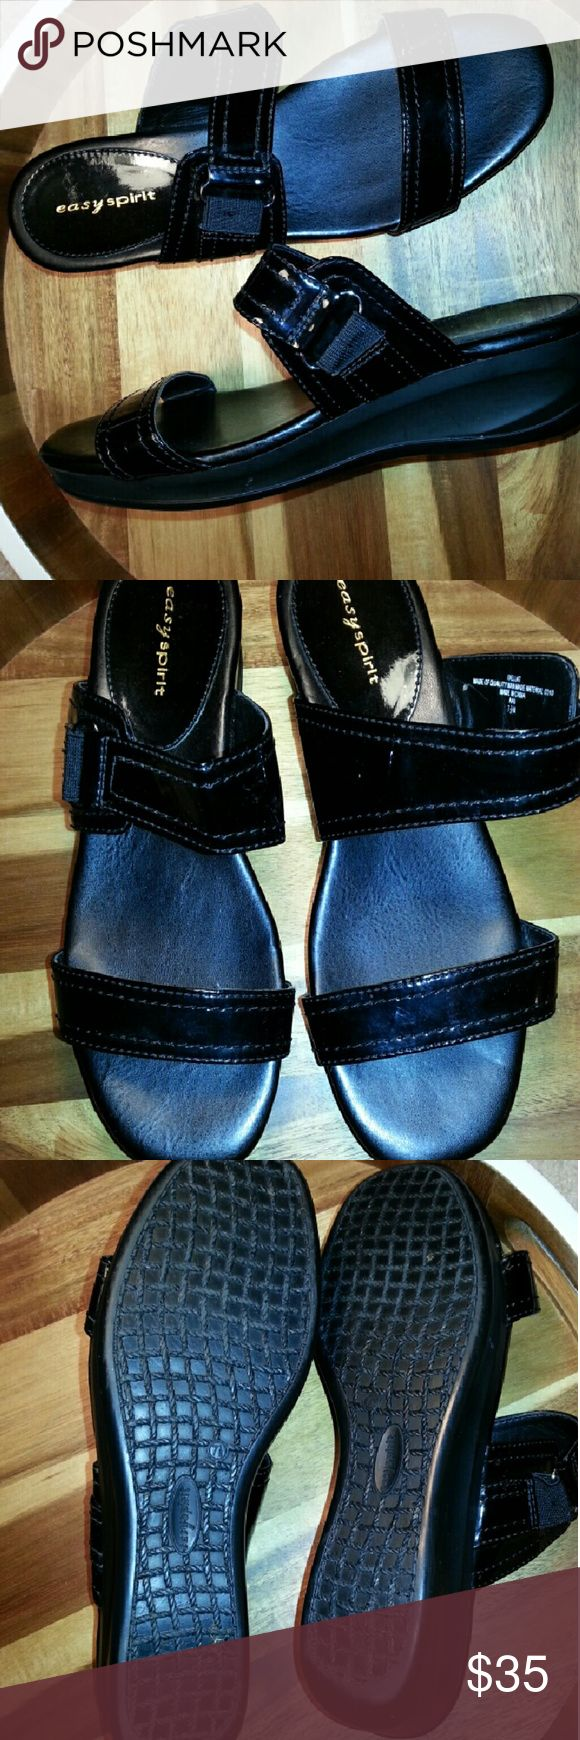 """EASY SPIRIT Black Patent Double Strap Sandals Adorable """"IDELLAT"""" black patent slide sandals with double strap; Main strap across foot has elastic; Man Made with a 2"""" wedge; Excellent condition Easy Spirit Shoes Sandals"""